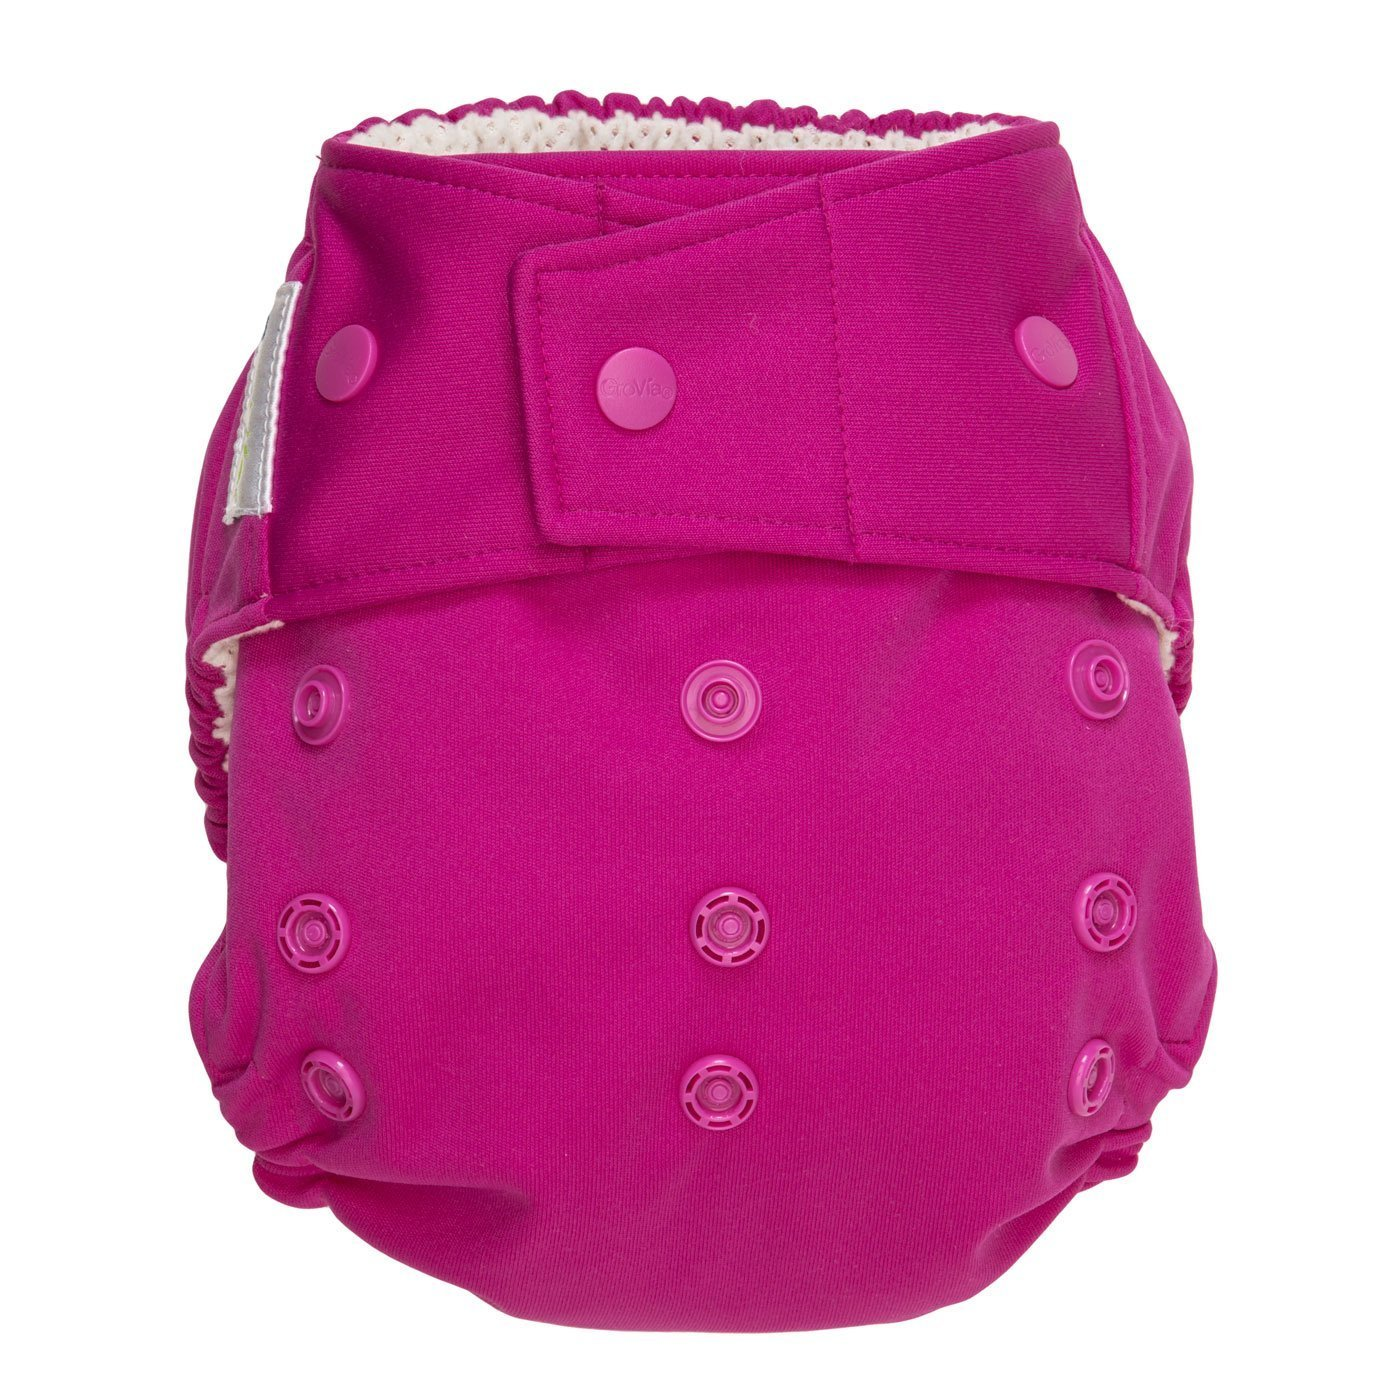 Learn How To Pick The Best Cloth Diapers For Newborns 3